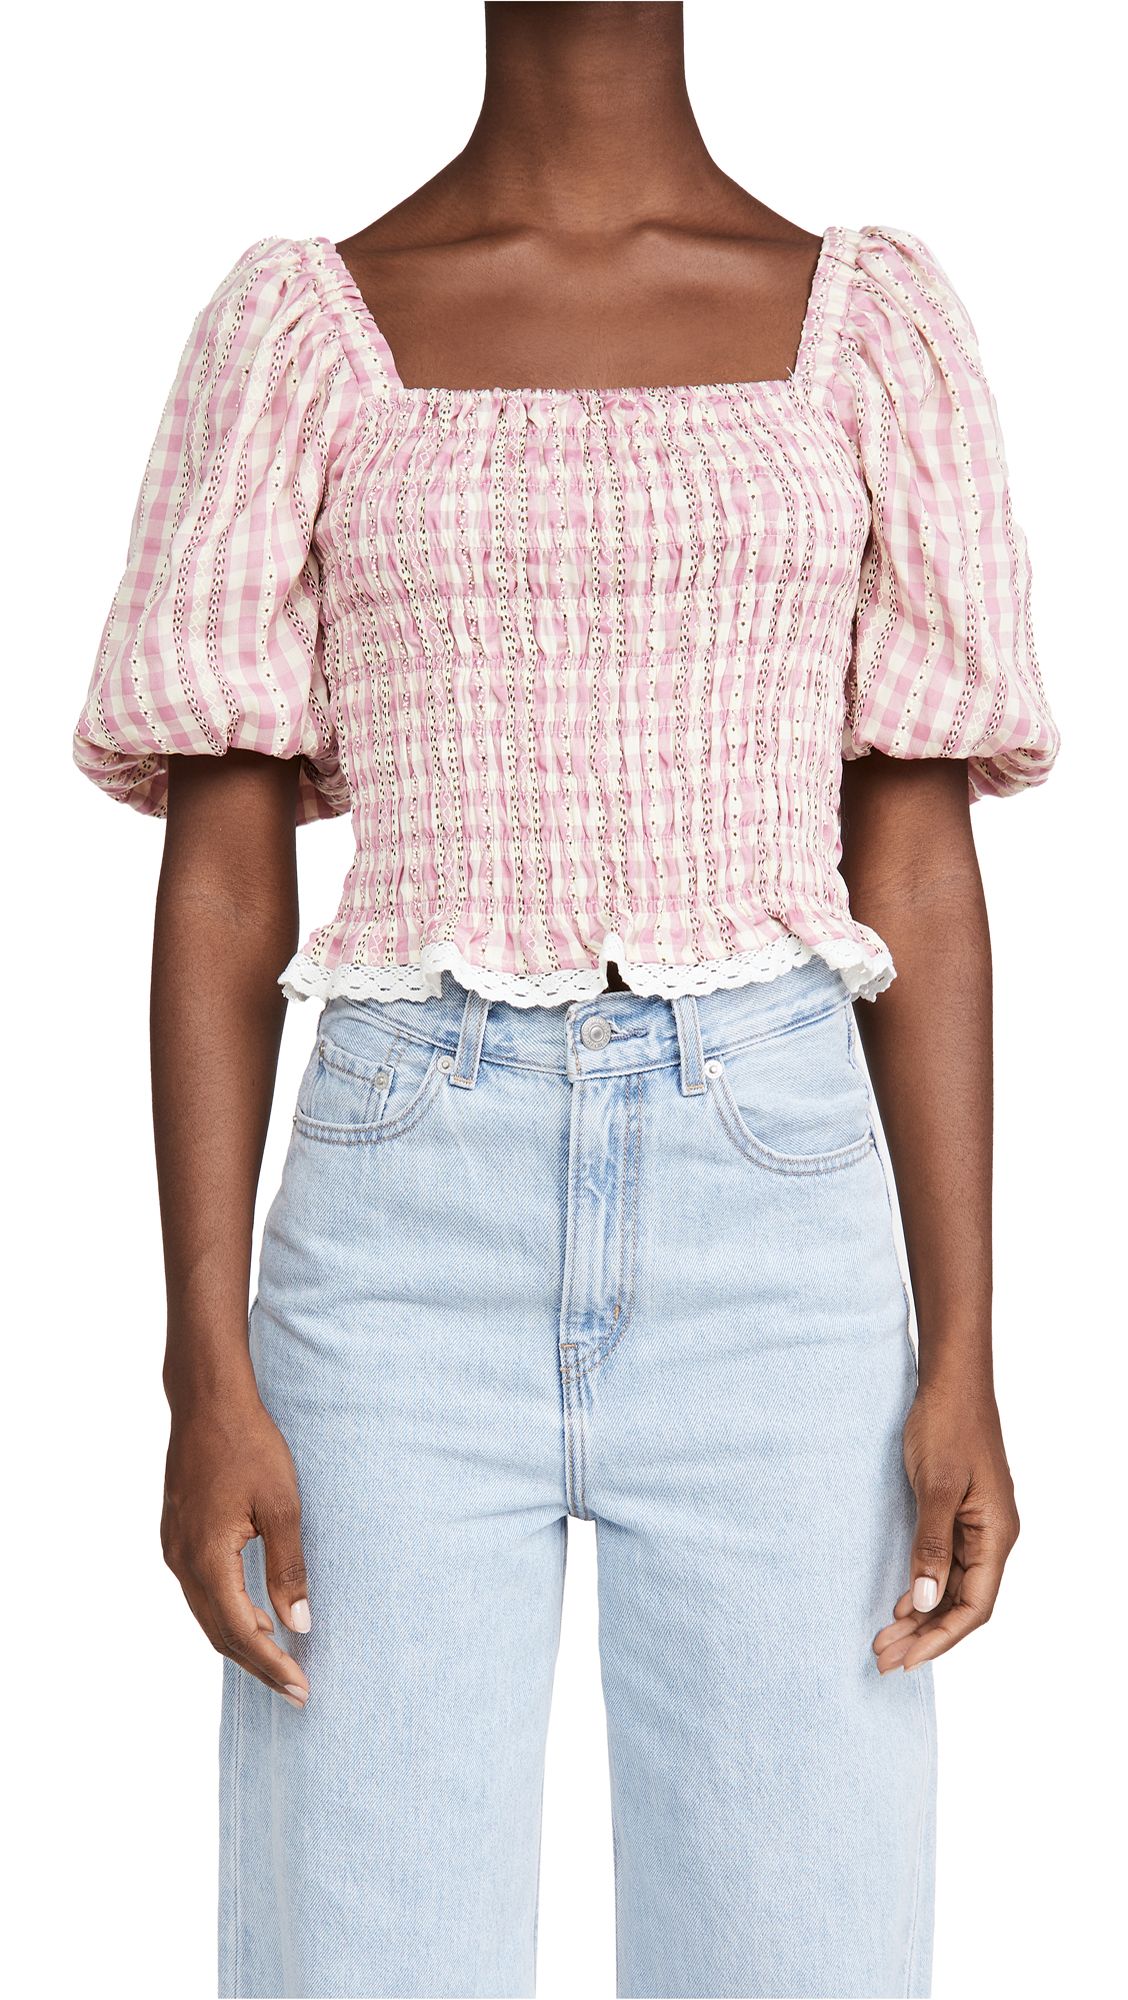 ENGLISH FACTORY Gingham Smocked Top